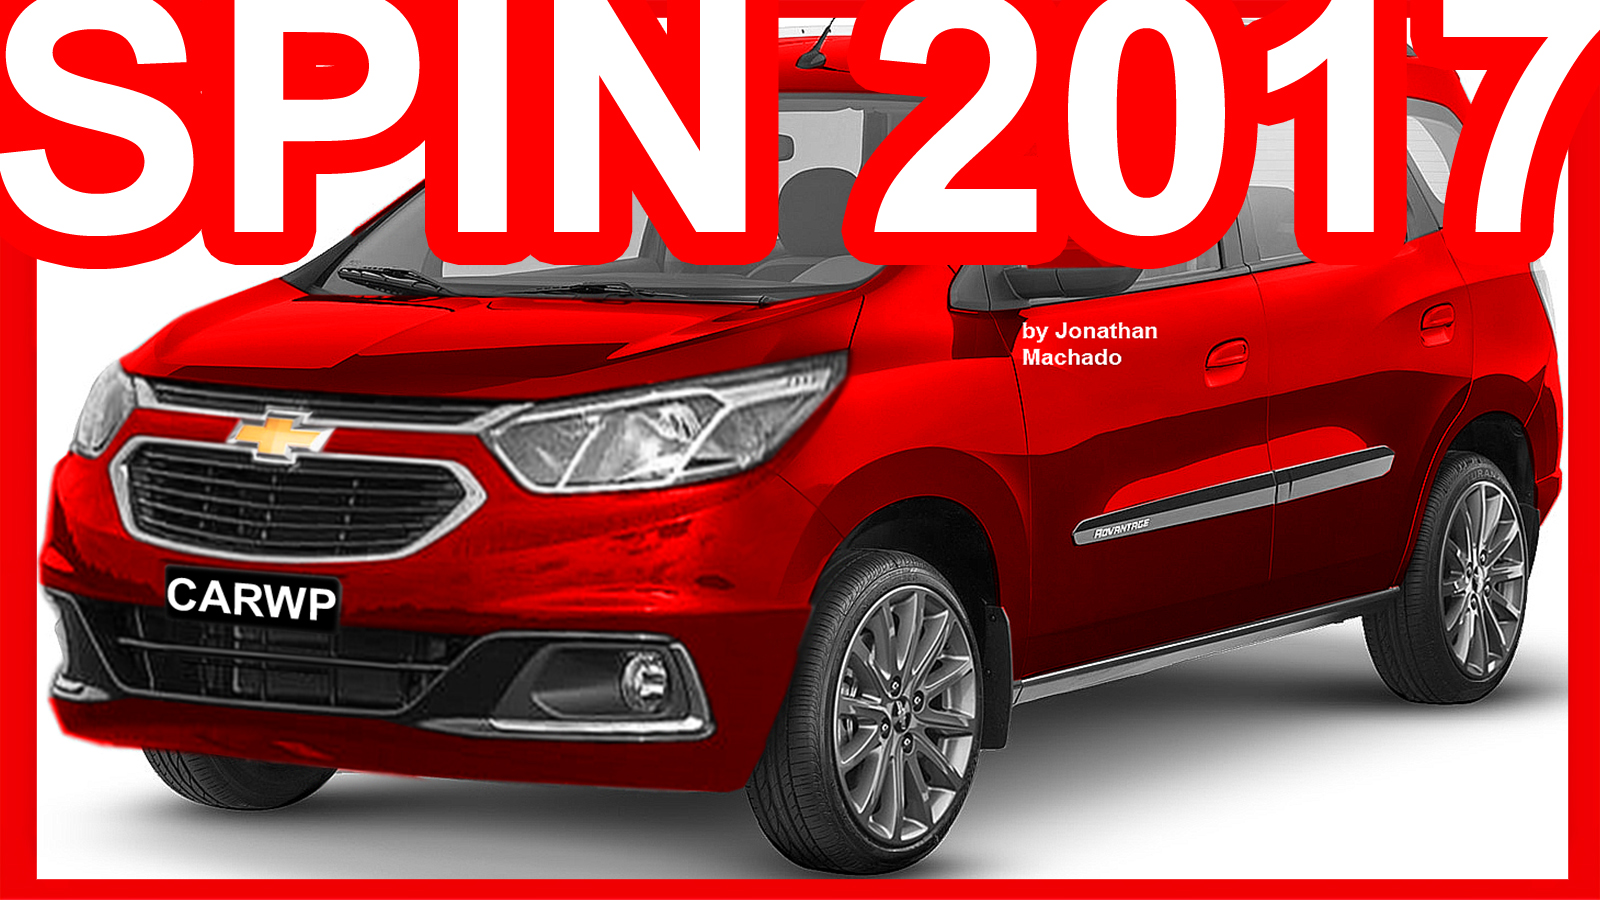 chevrolet spin facelift with Chevrolet Spin 2017 Facelift Spin on Chevrolet Cars At Auto Expo 2016 together with Chevrolet Enjoy Range Now Starts At Rs 4 99 Lakh In India besides Chevrolet Spin 2017 Facelift Spin likewise 2019 Chevrolet Spark Activ Hatchback also Chevrolet Spin Evolue Douceur Amerique Sud.